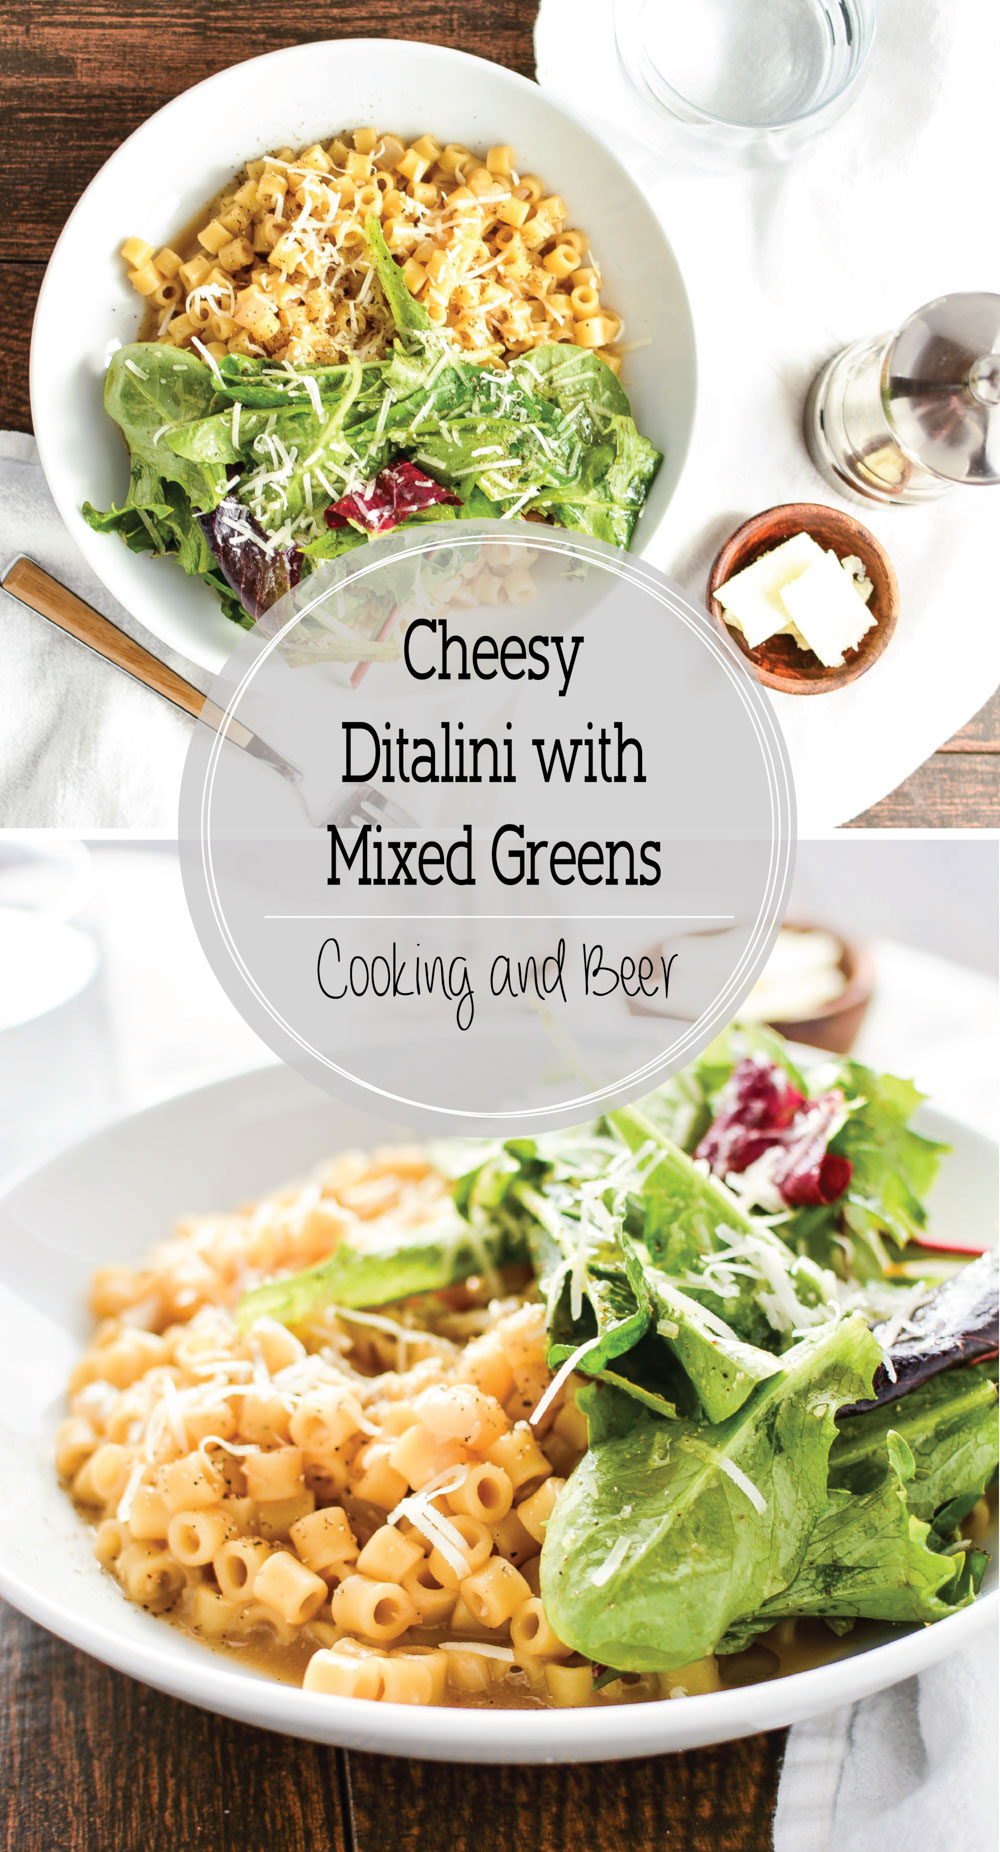 Cheesy Ditalini with Mixed Greens is the perfect light lunch!